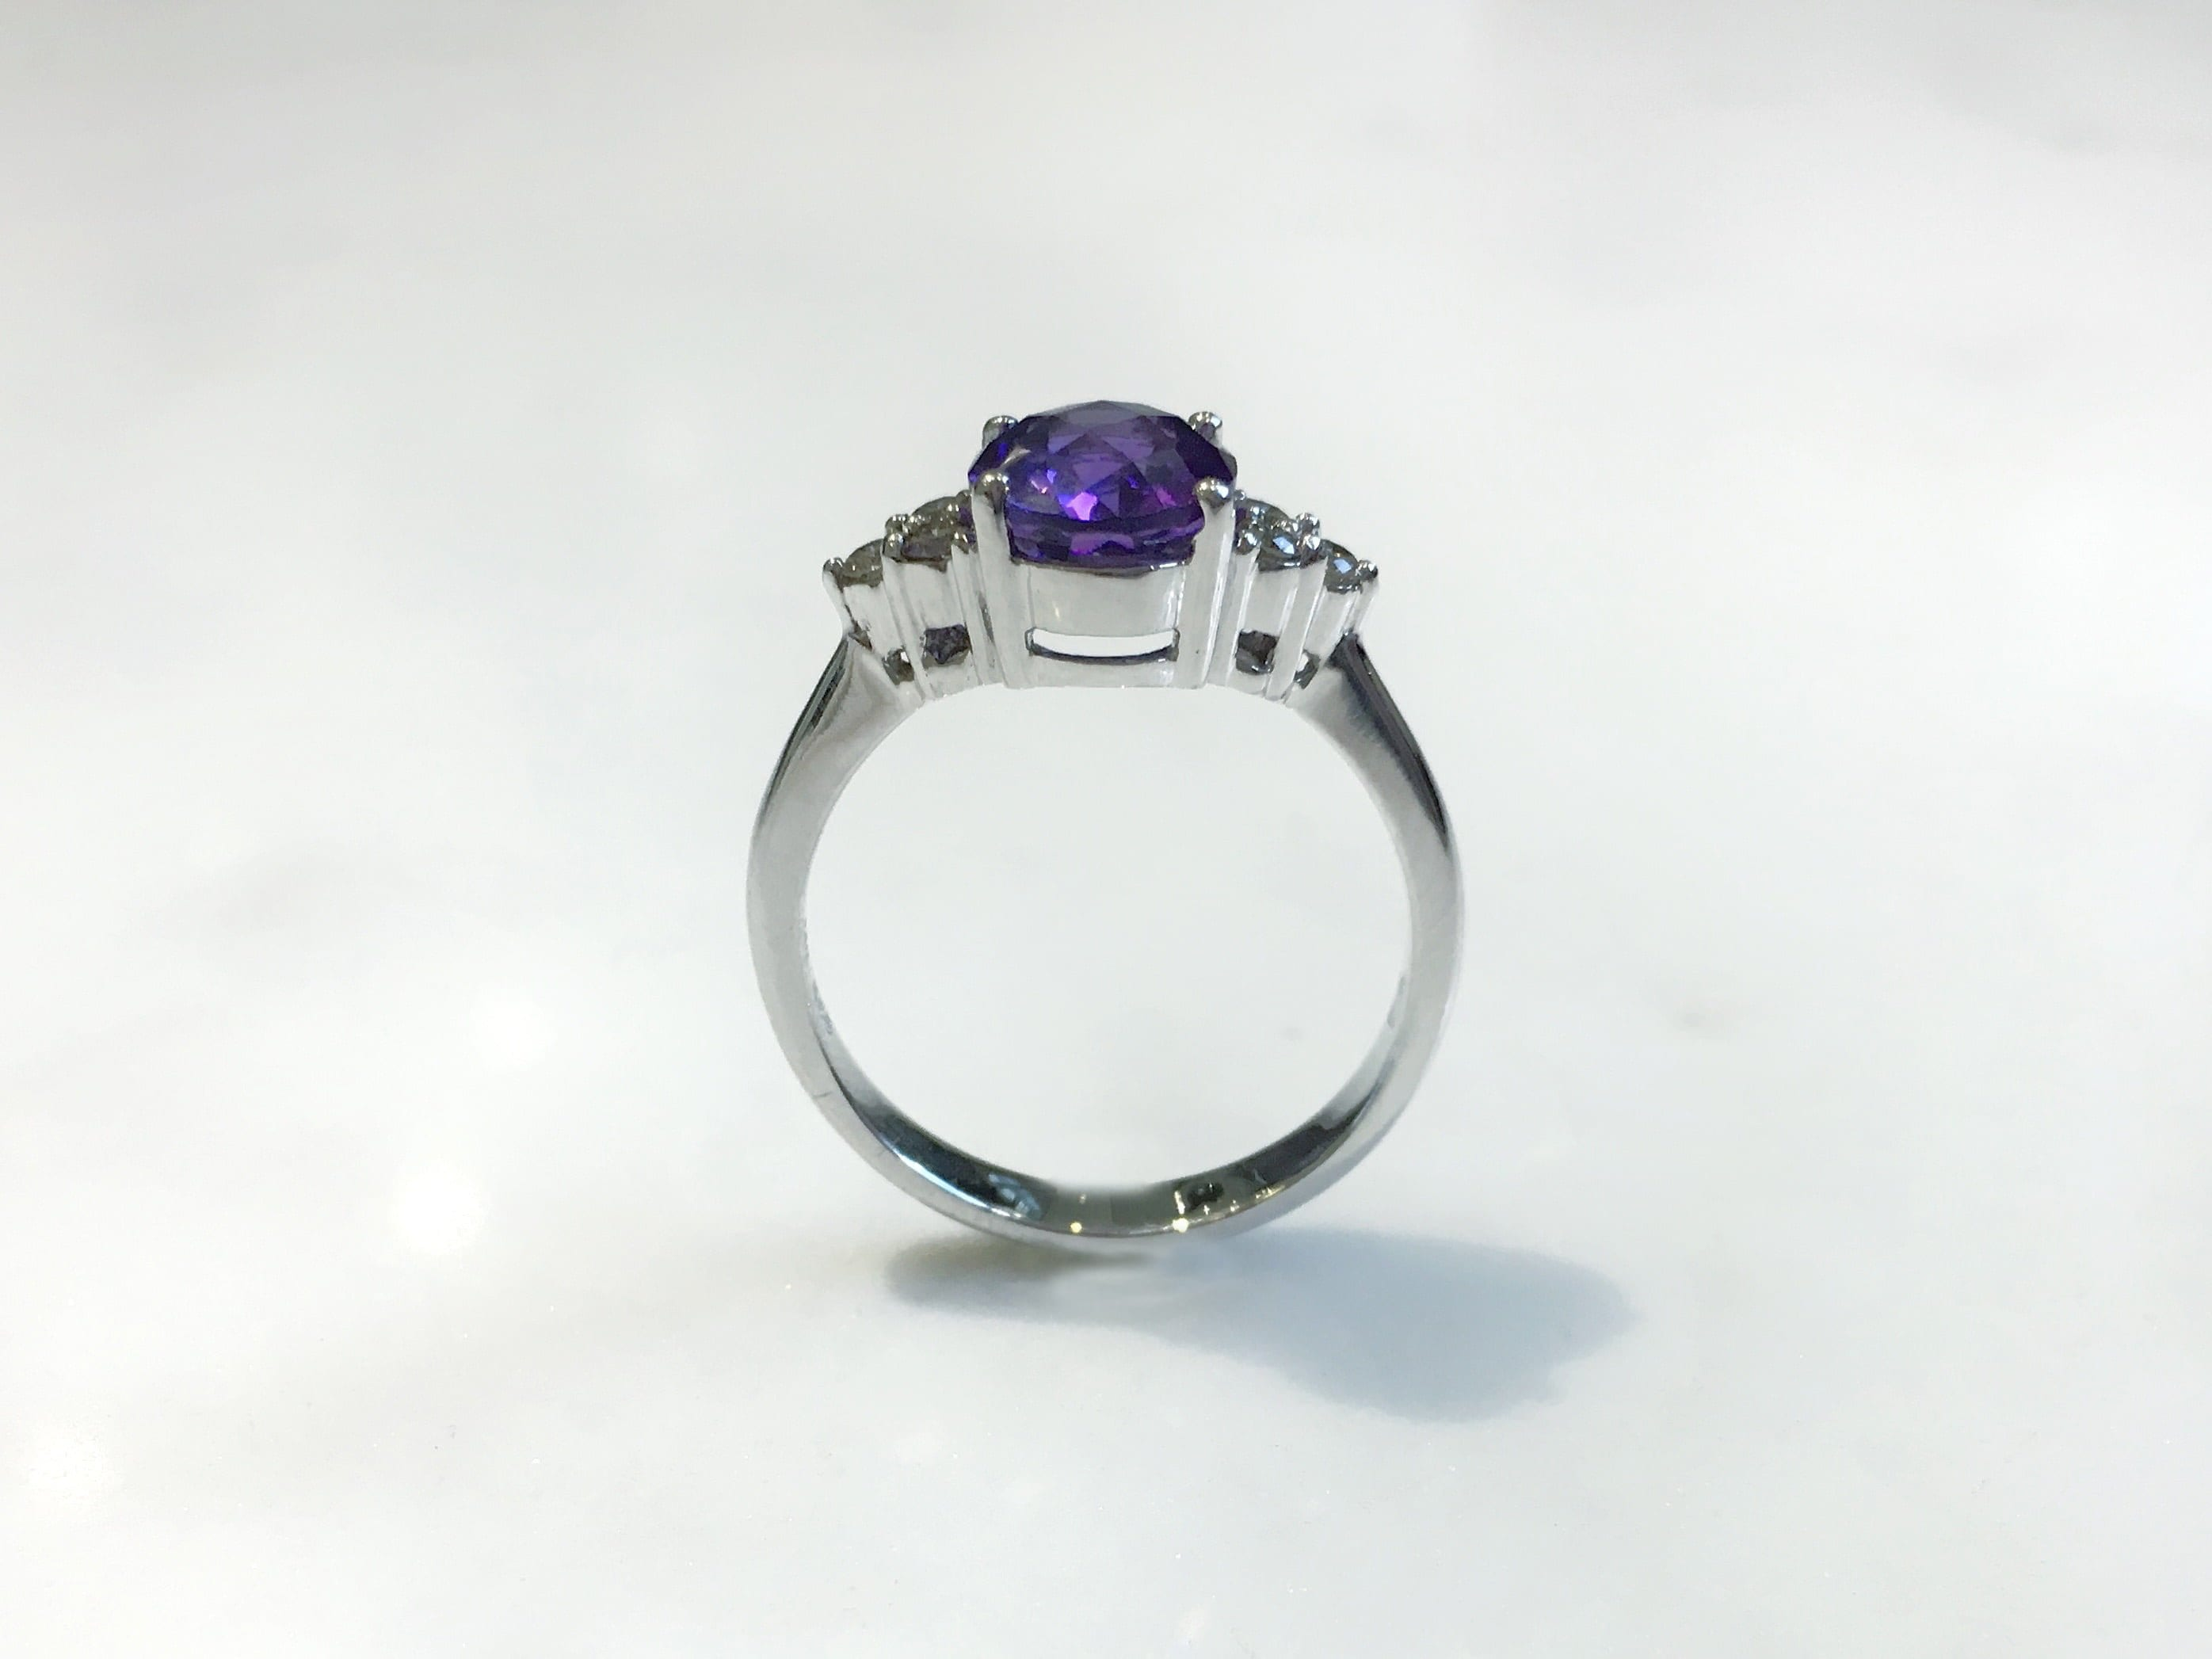 budet rings engagement gold products amethyst ring cocktail shieldcocktailrngamethystfront yg marcia amethist shield ncb